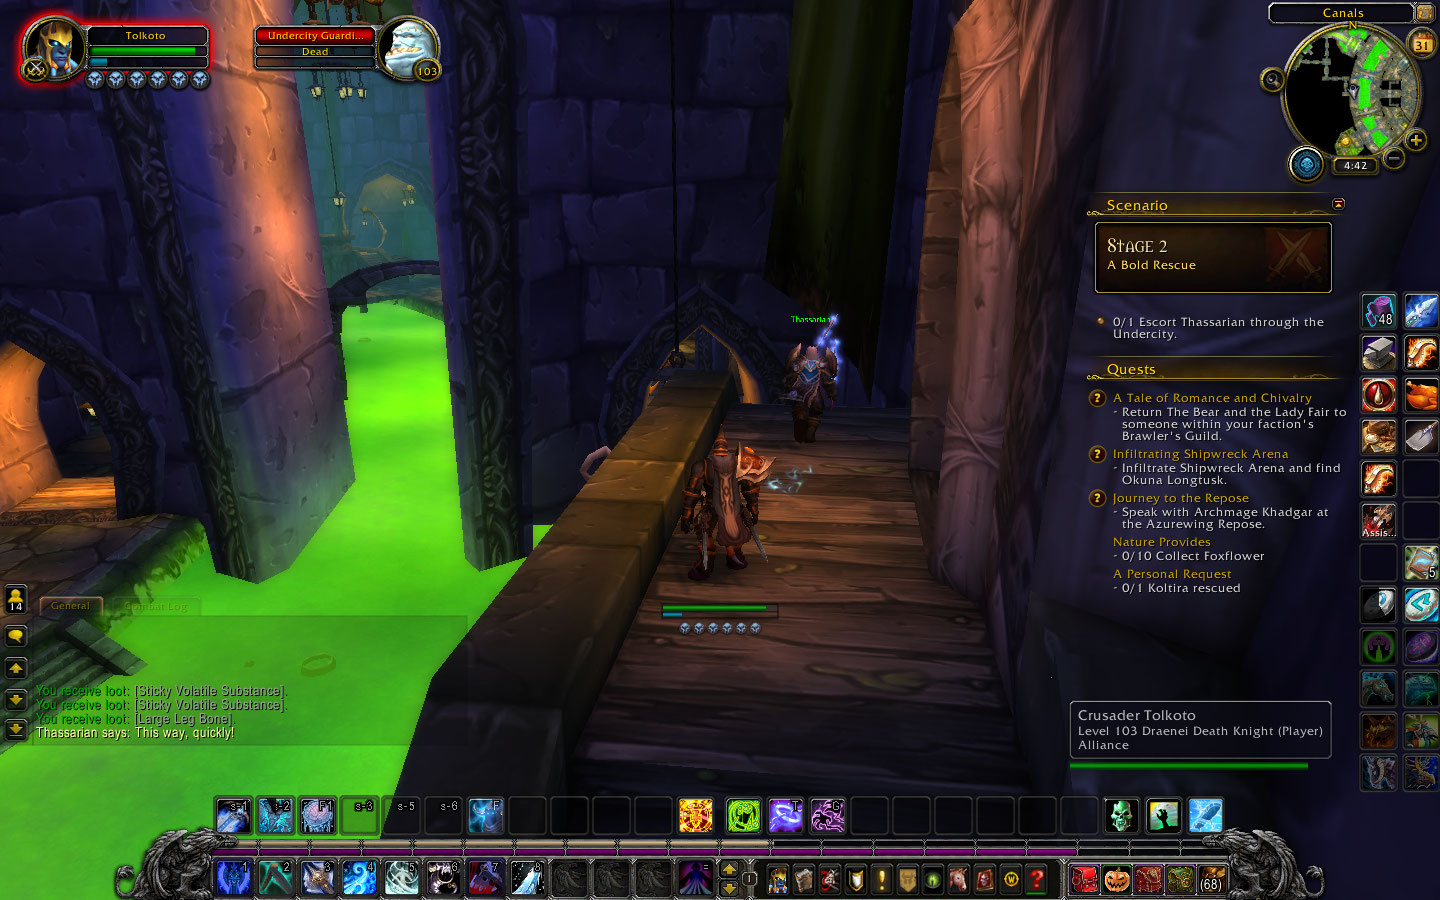 What's a dranei like me doing in Undercity?